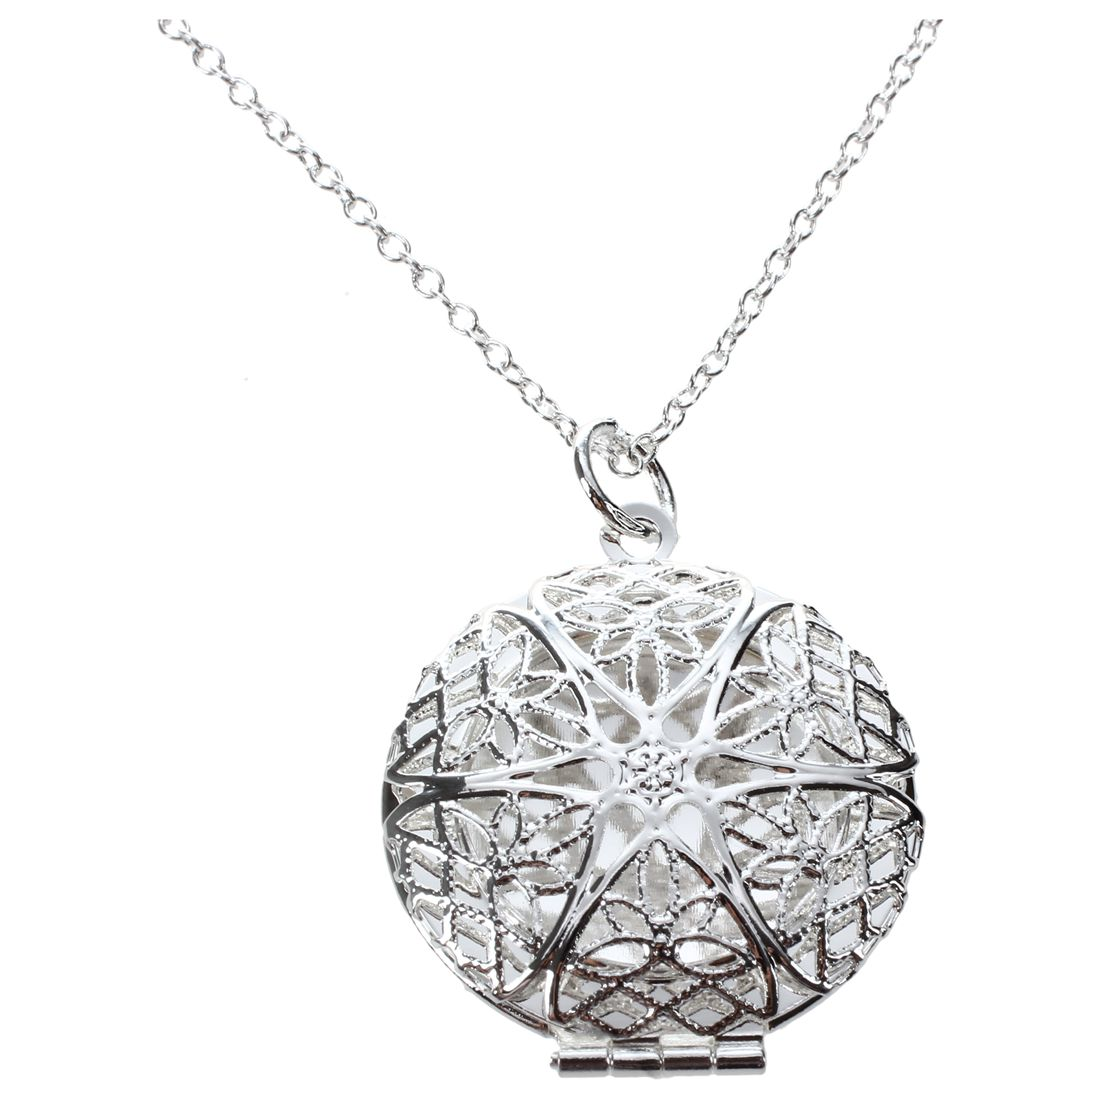 Womens Silver Hollow Flower Photo Frame Charms Pendant Chain Necklace font b Jewelry b font